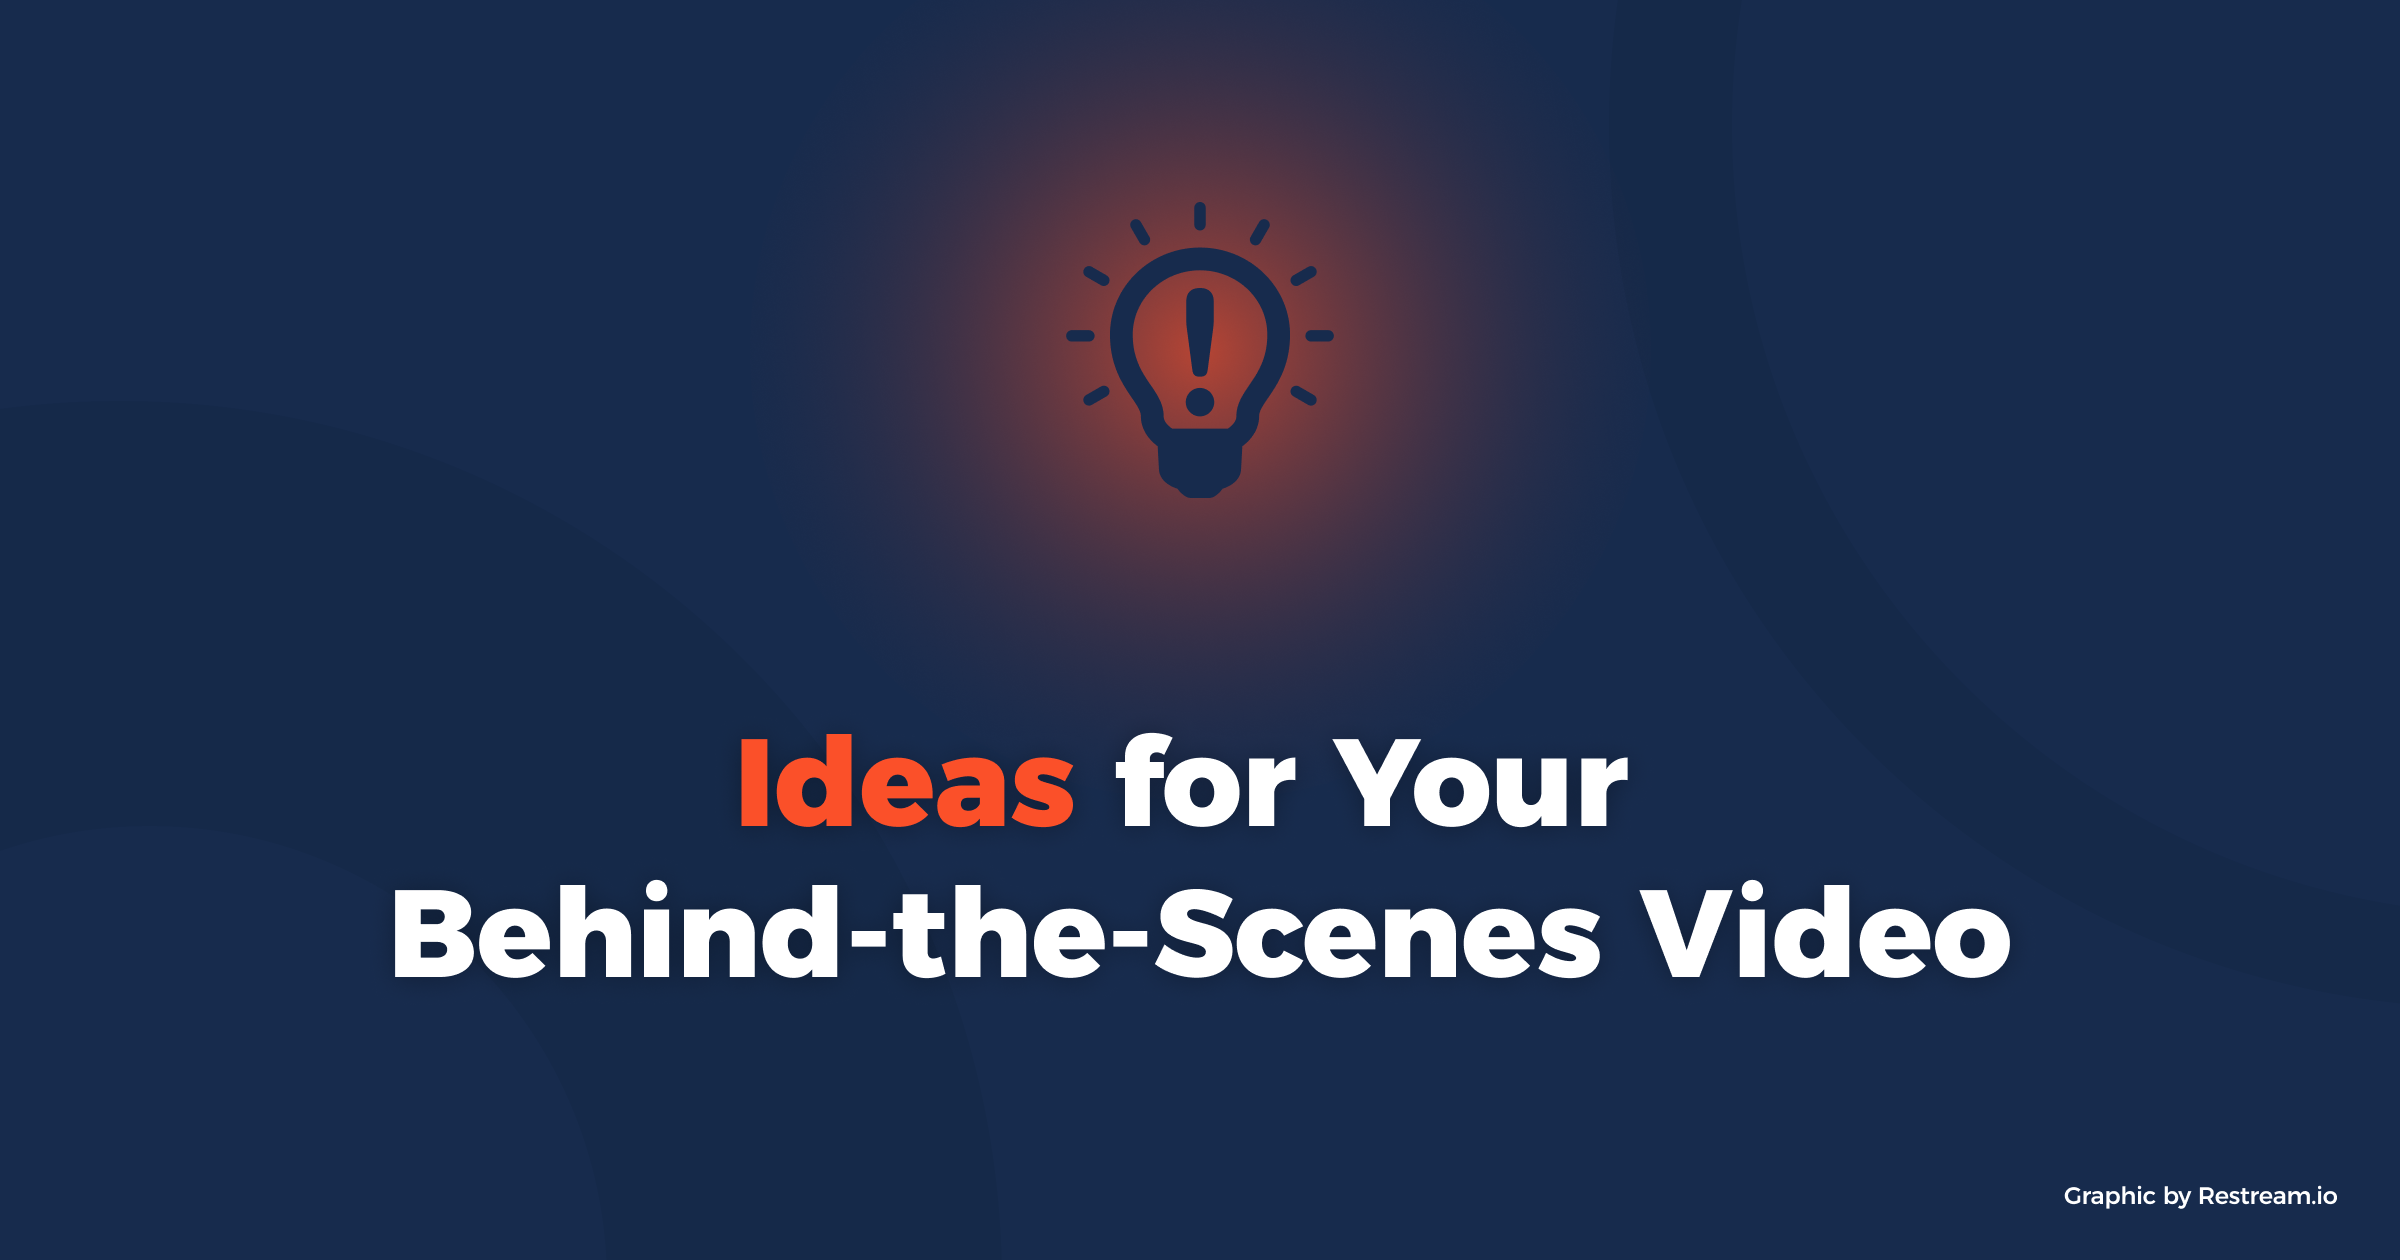 Ideas for your behind-the-scenes video